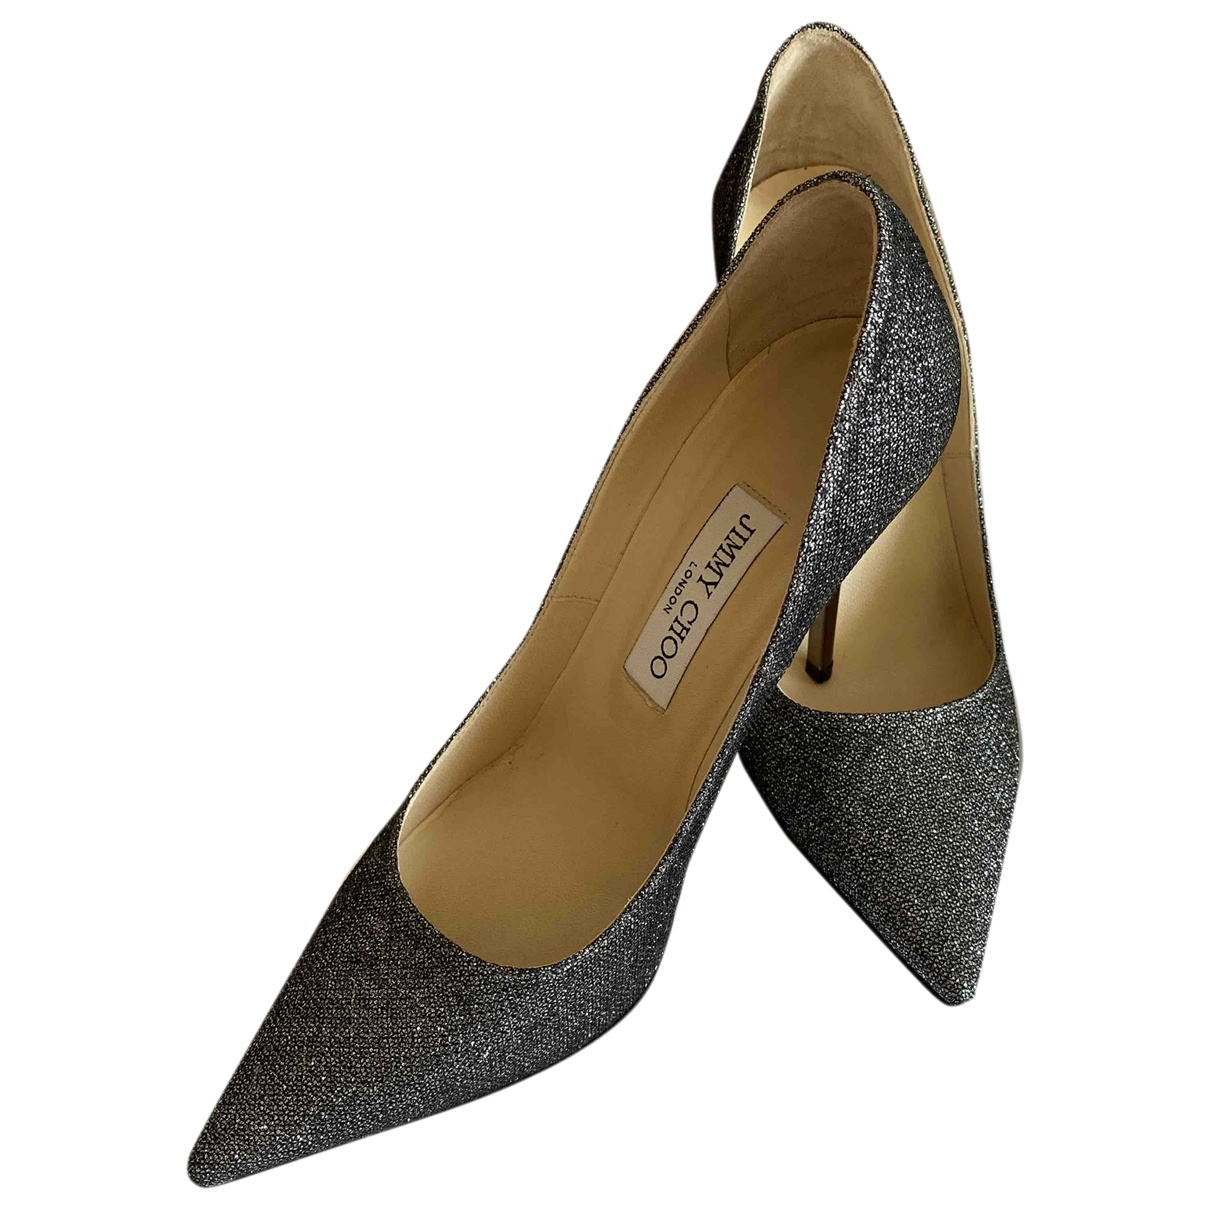 Jimmy Choo \N Pumps in  Metallic Mit Pailletten